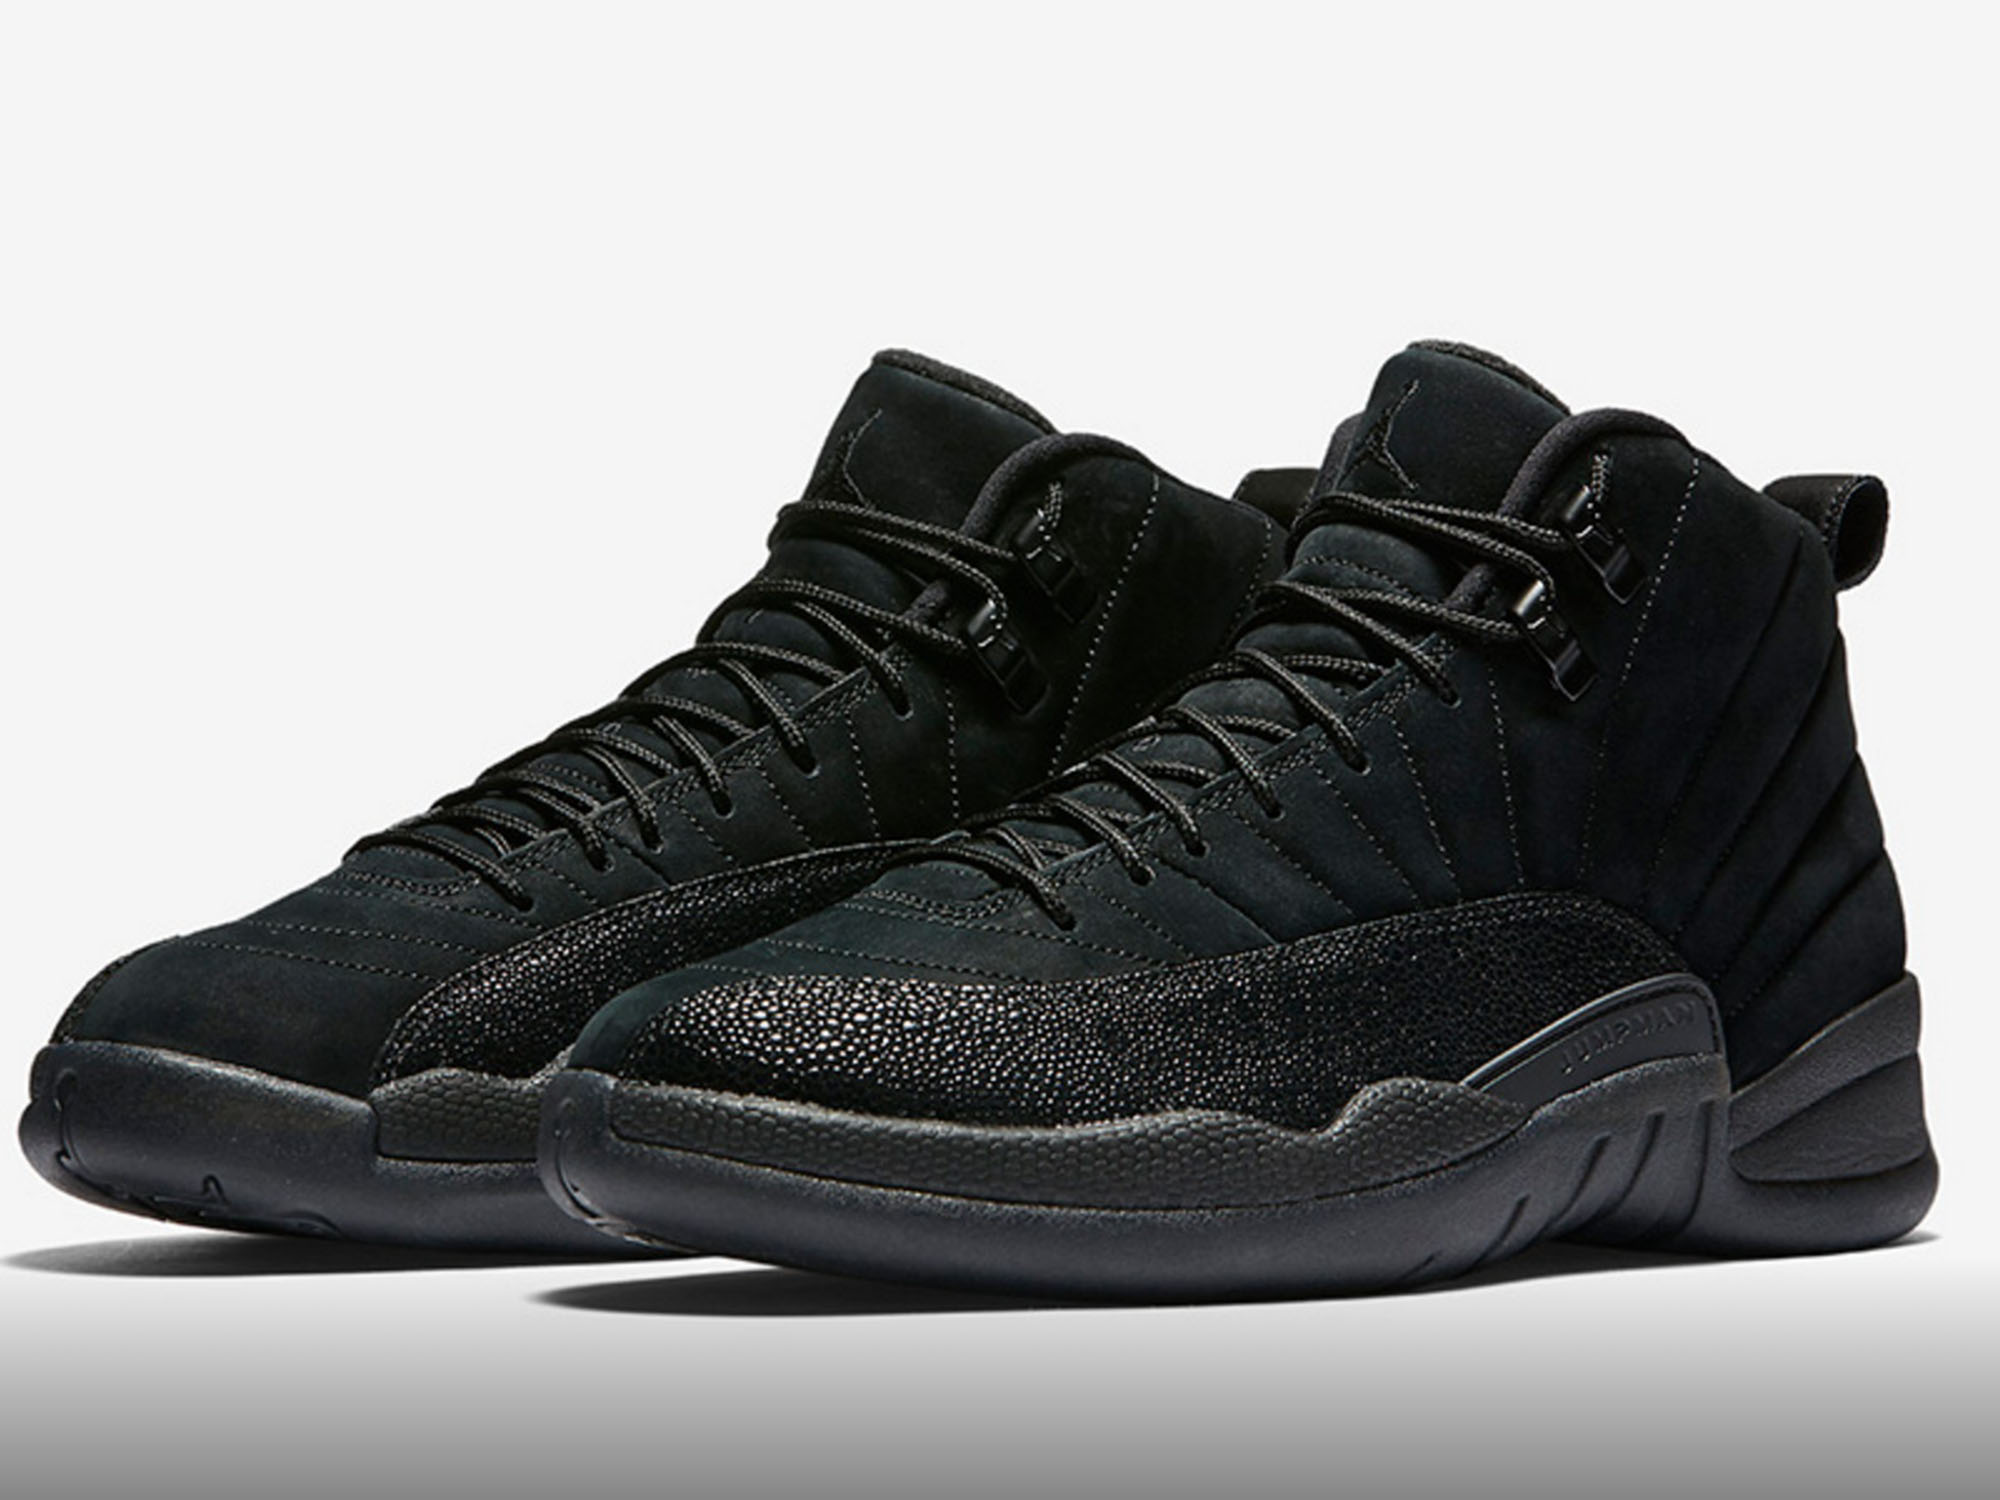 New jordan release date in Perth